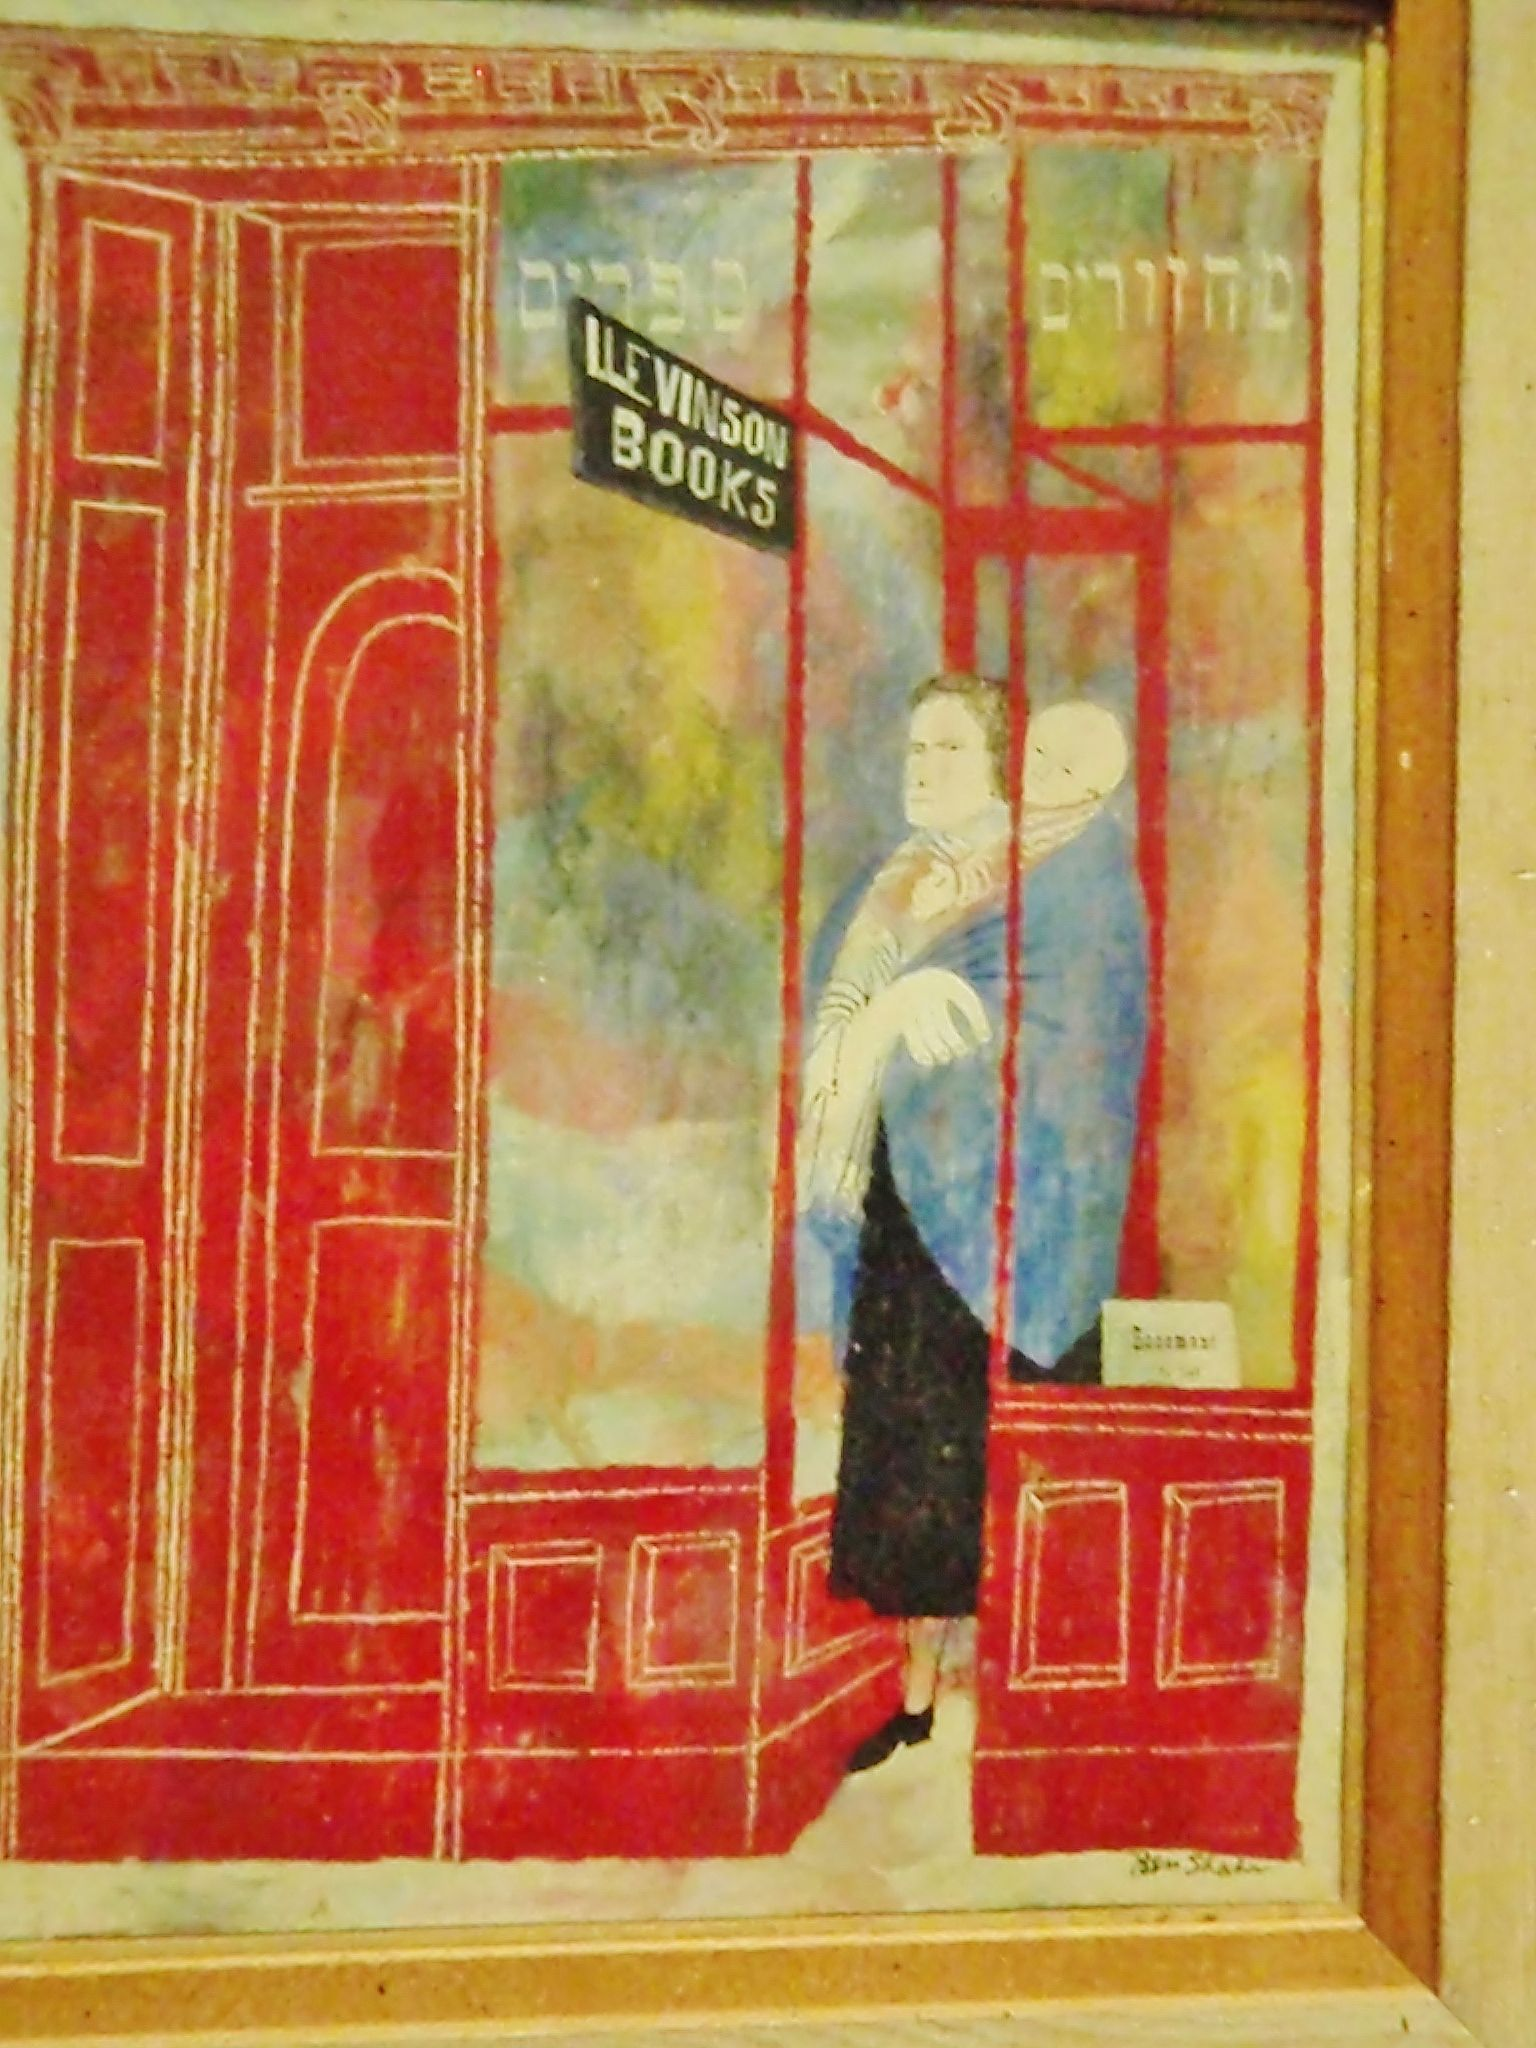 Bookshop Hebrew Books Holy Day Books By Ben Shahn Detroit Institute Of Arts Detroit Mi Ben Shahn Detroit Institute Of Arts Illustration Art